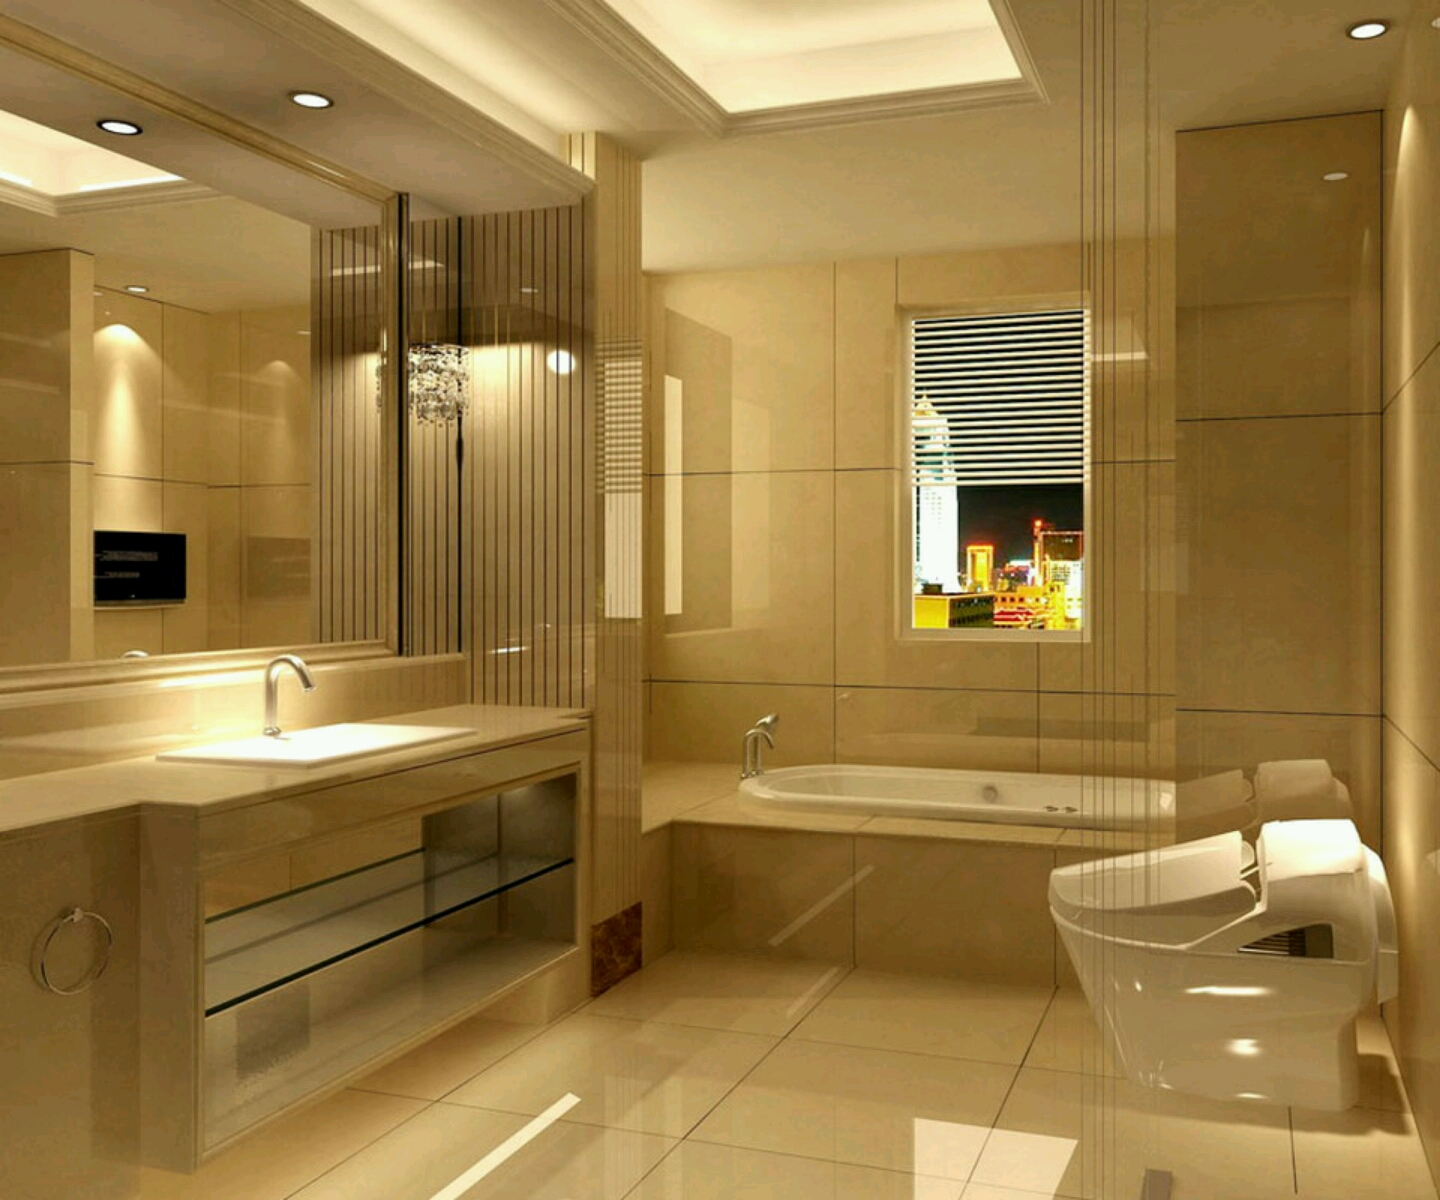 modern bathrooms setting ideas furniture gallery On photos of bathroom designs